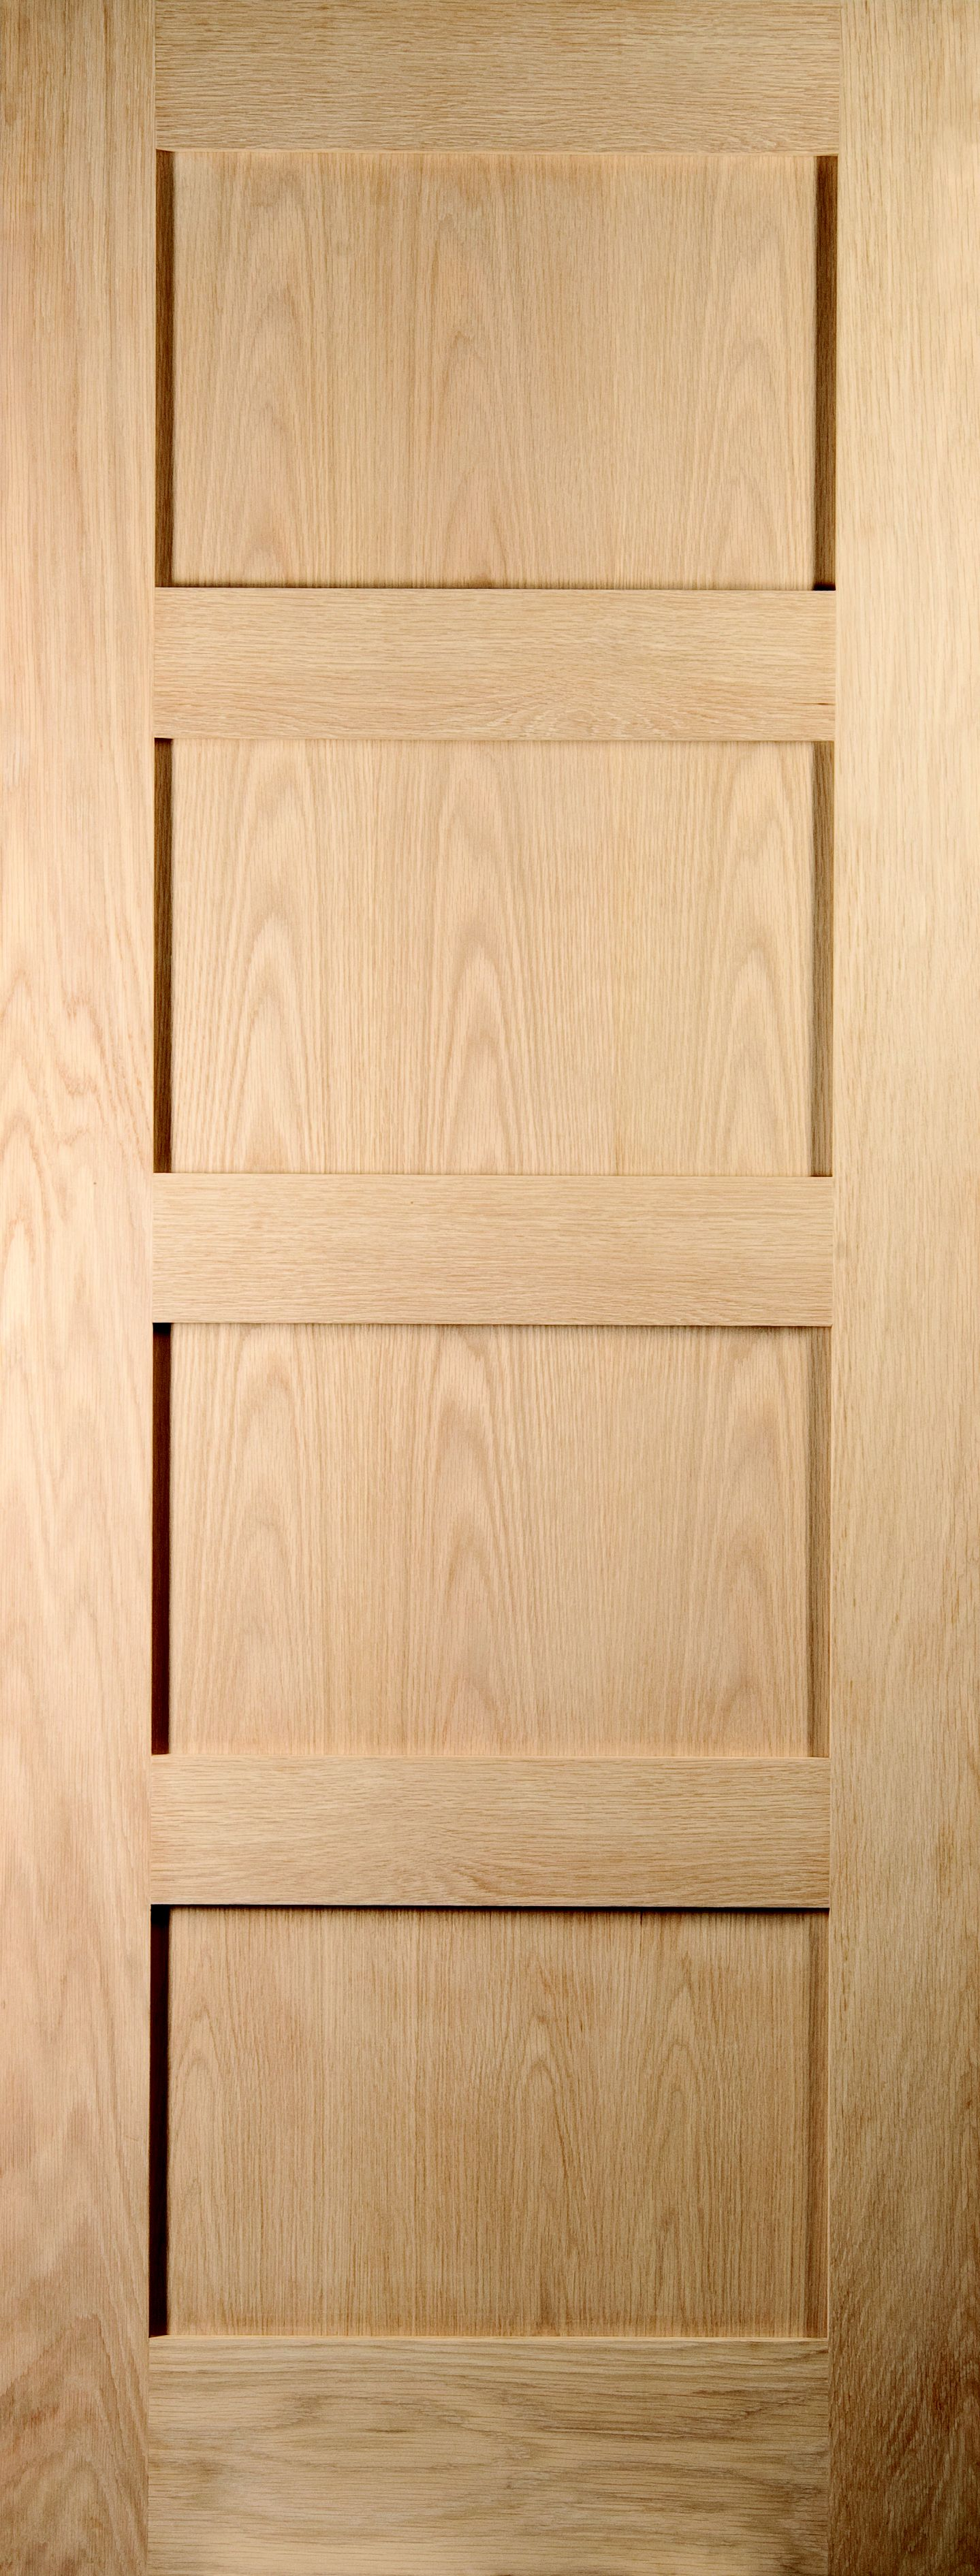 4 Panel Shaker Oak Veneer Unglazed Internal Standard Door, (h)1981mm (w)610mm